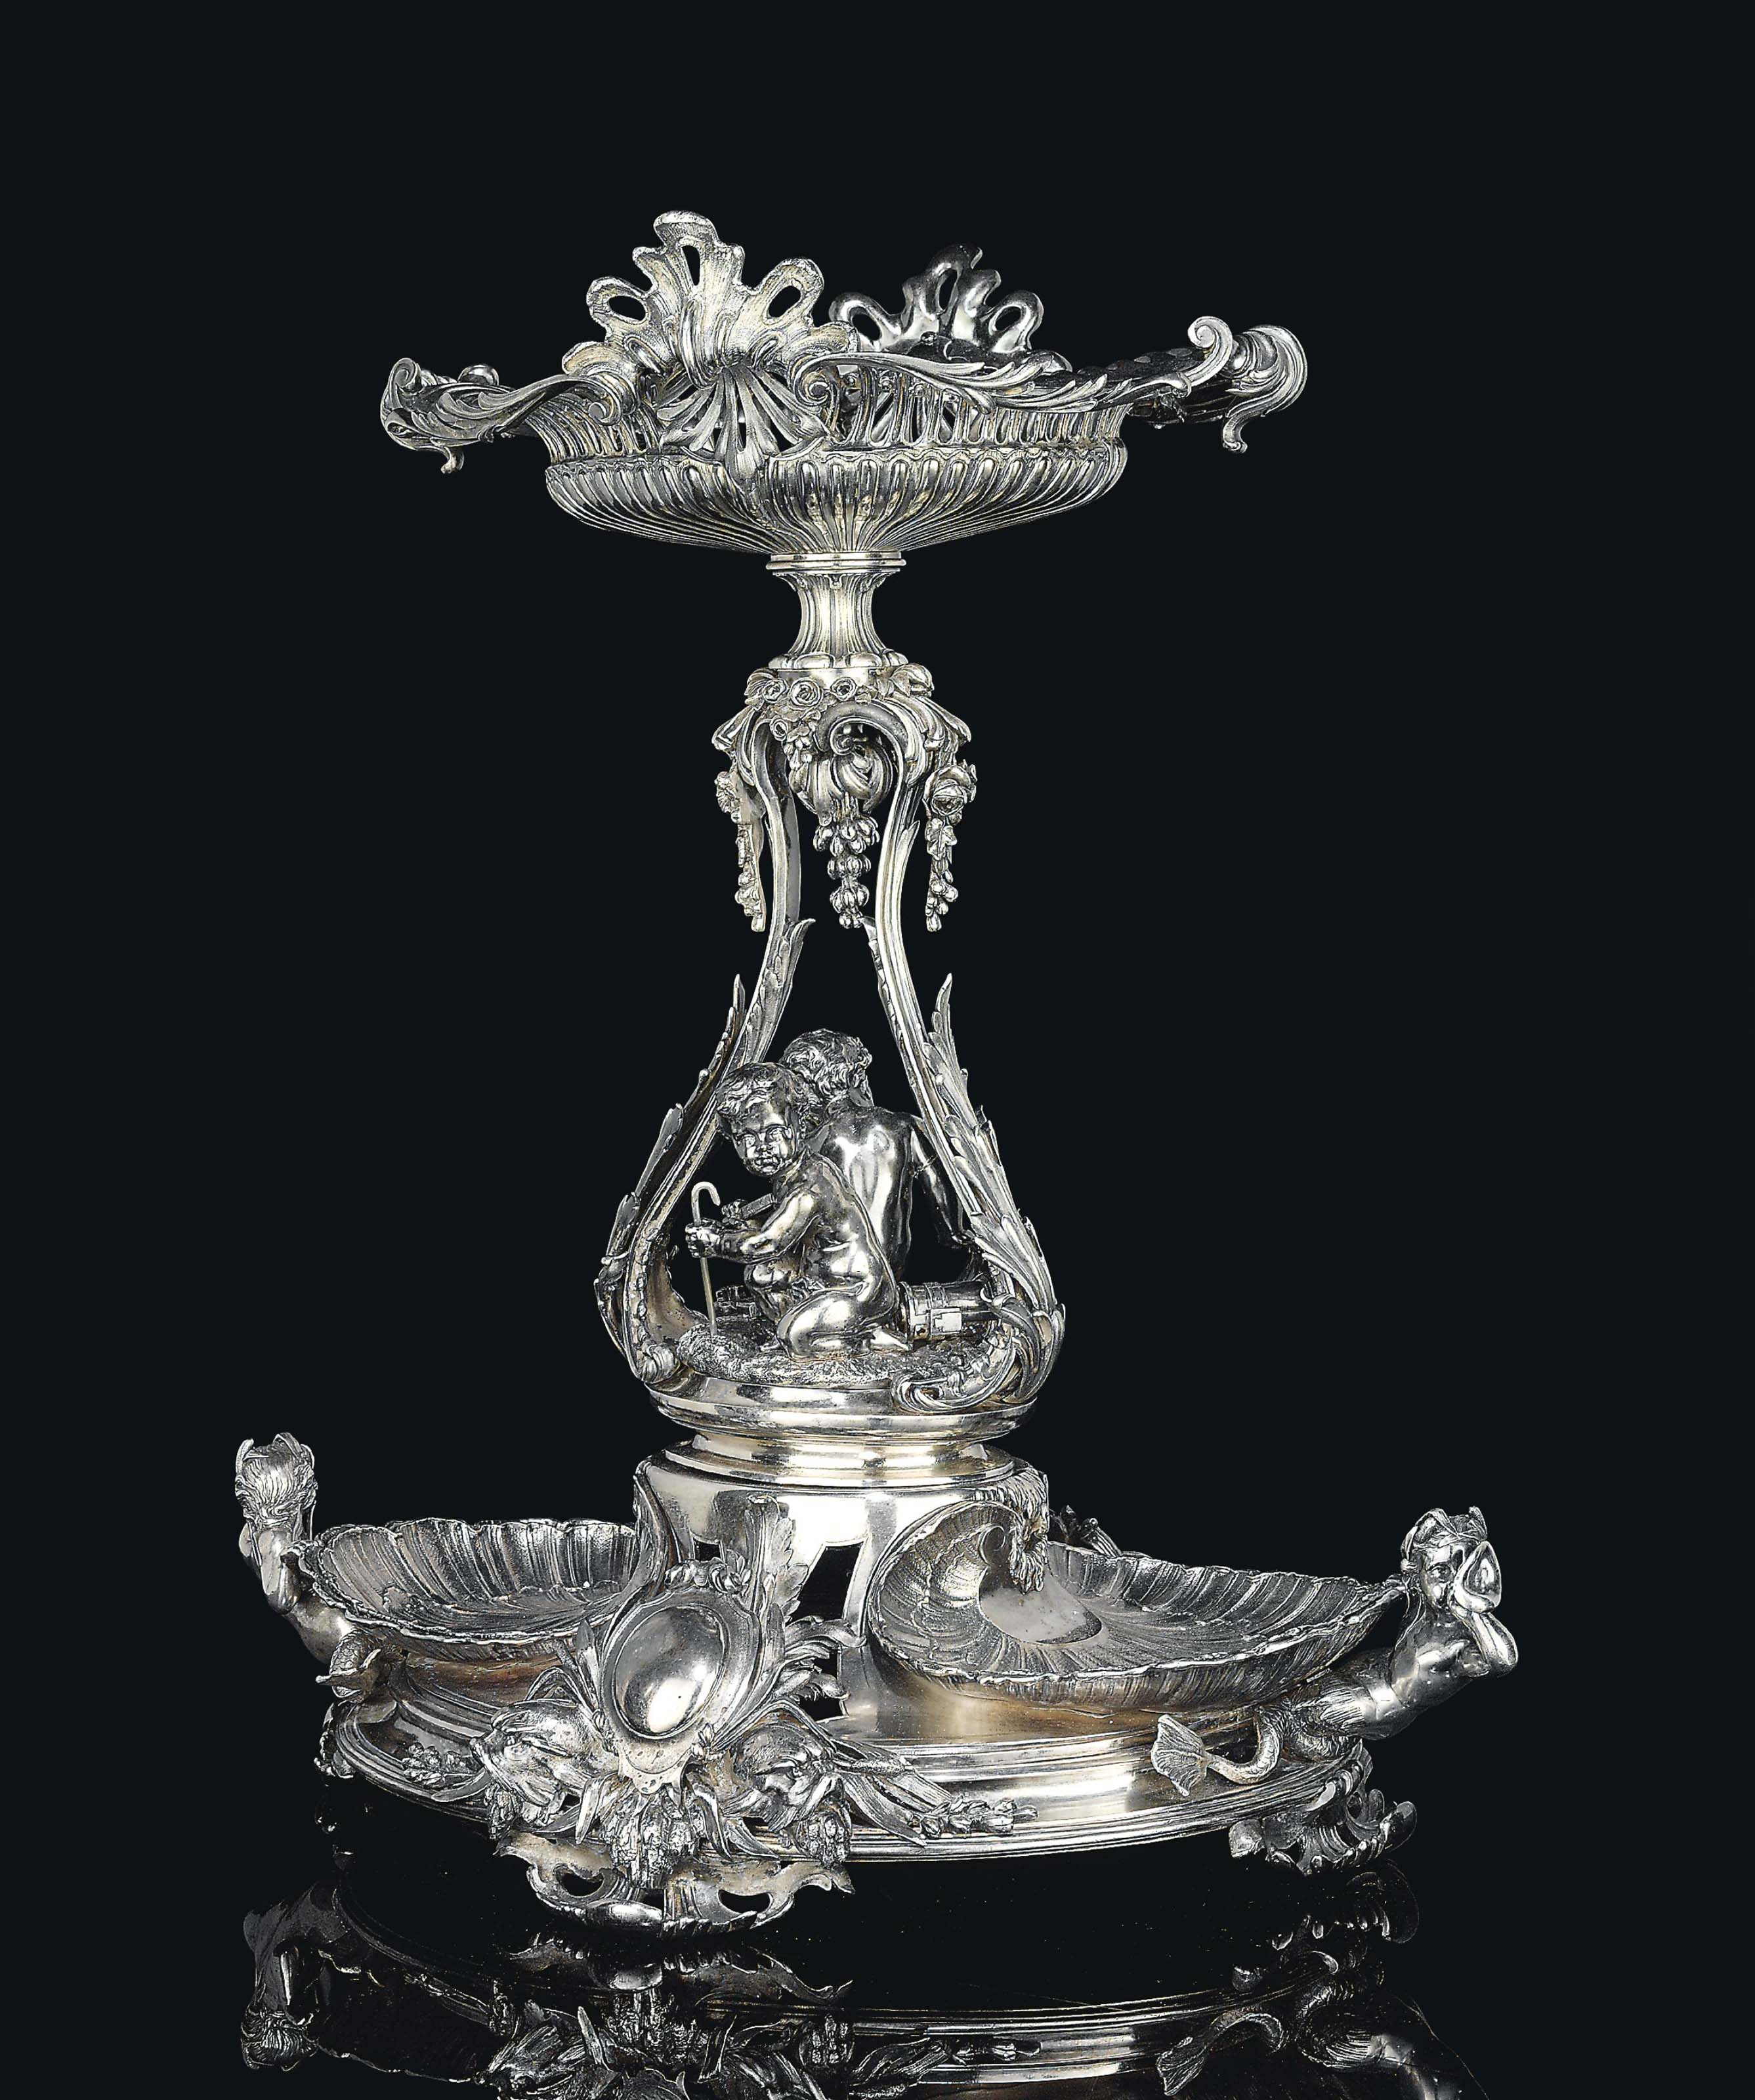 A NAPOLEON III ELECTROPLATED CENTREPIECE, TITLED 'CORBEILLE LOUIS XIV, DEUX COQUILLES, TRITONS ET DAUPHINS'